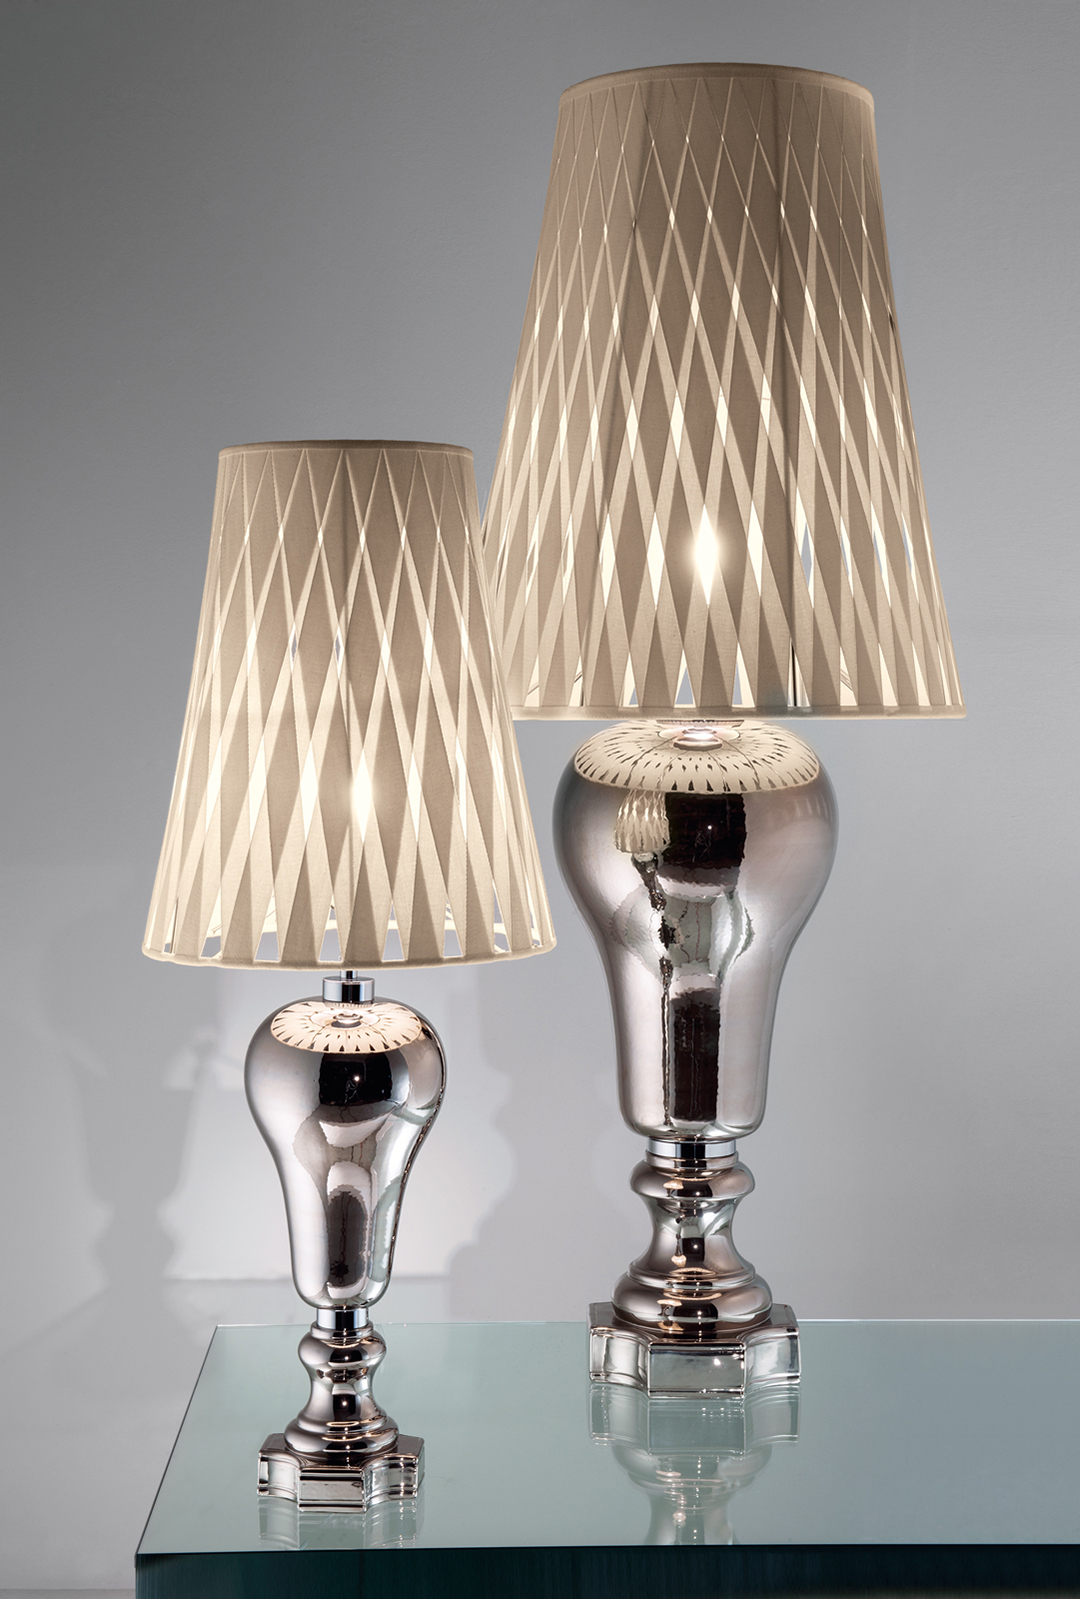 Luxury Table Lamps Luxury Ceramic Table Lamp Dreams Line Design